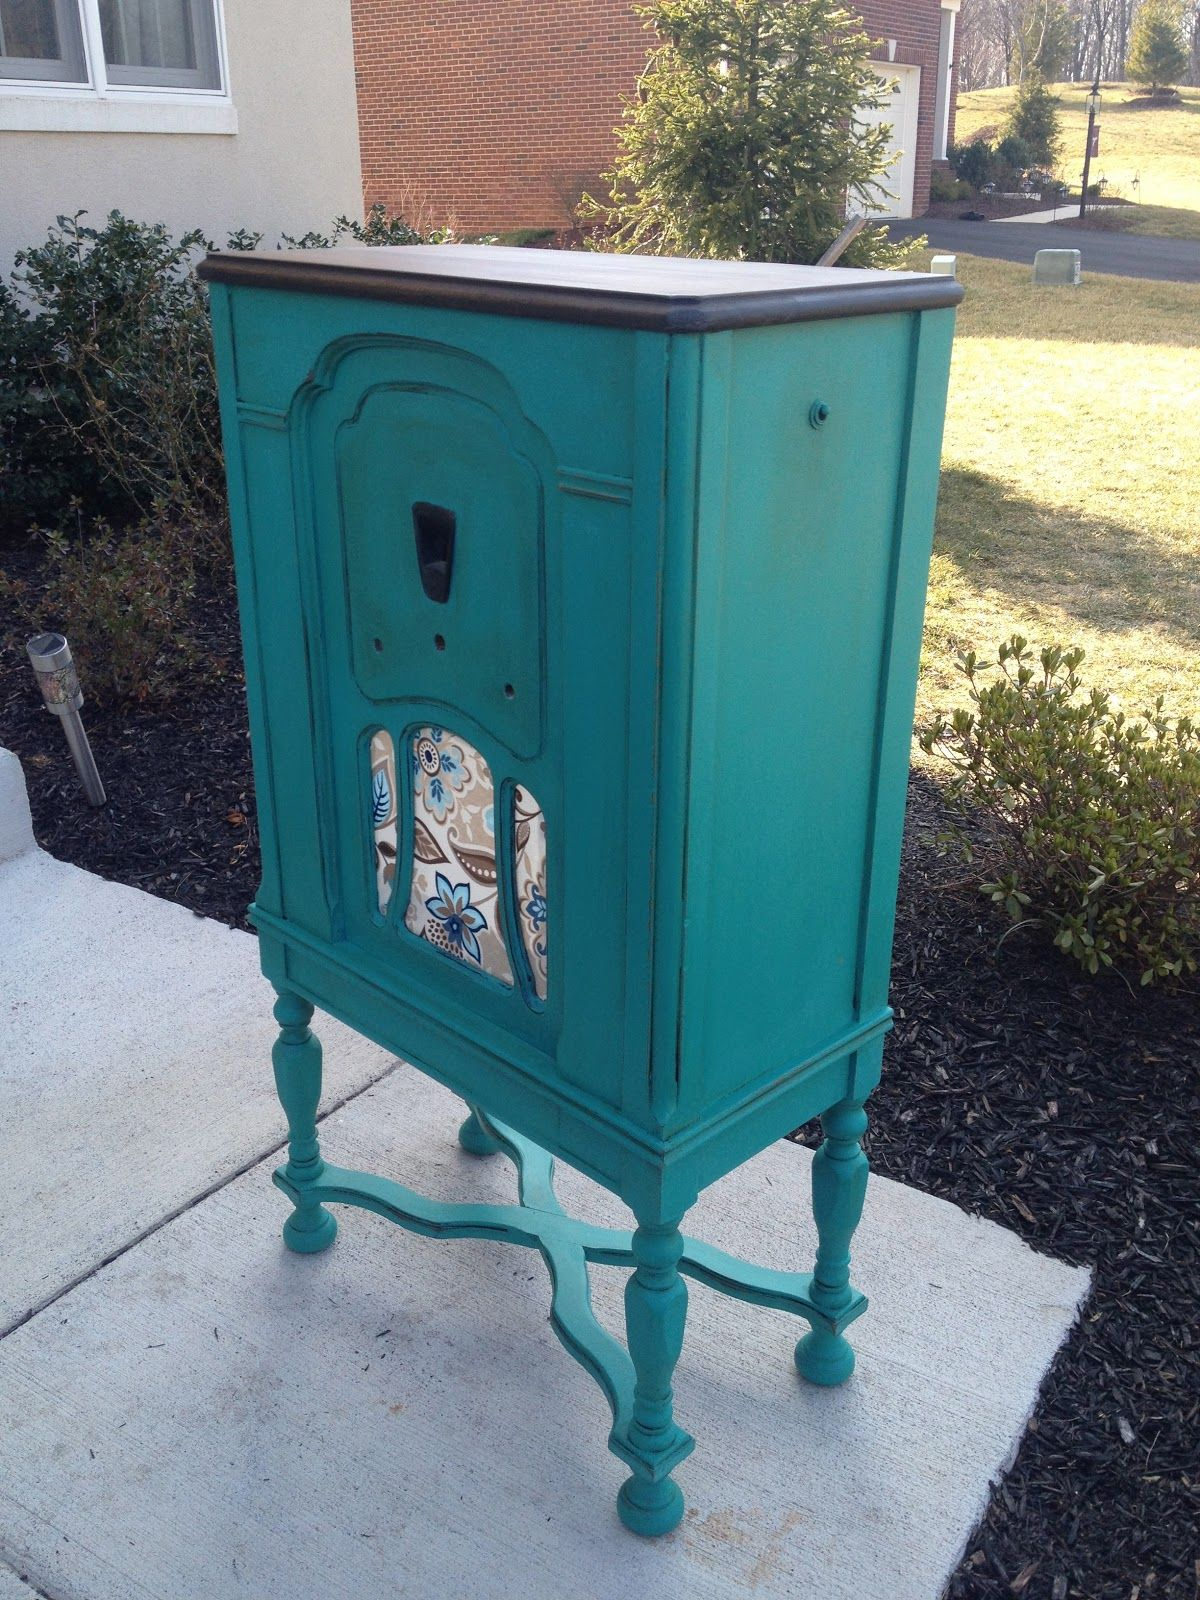 Vintage Radio Cabinet For Sale - You will most likely have a powerful  reaction when you find the - My Twig And Twine Nest: Vintage Radio Cabinet Transformation Radio